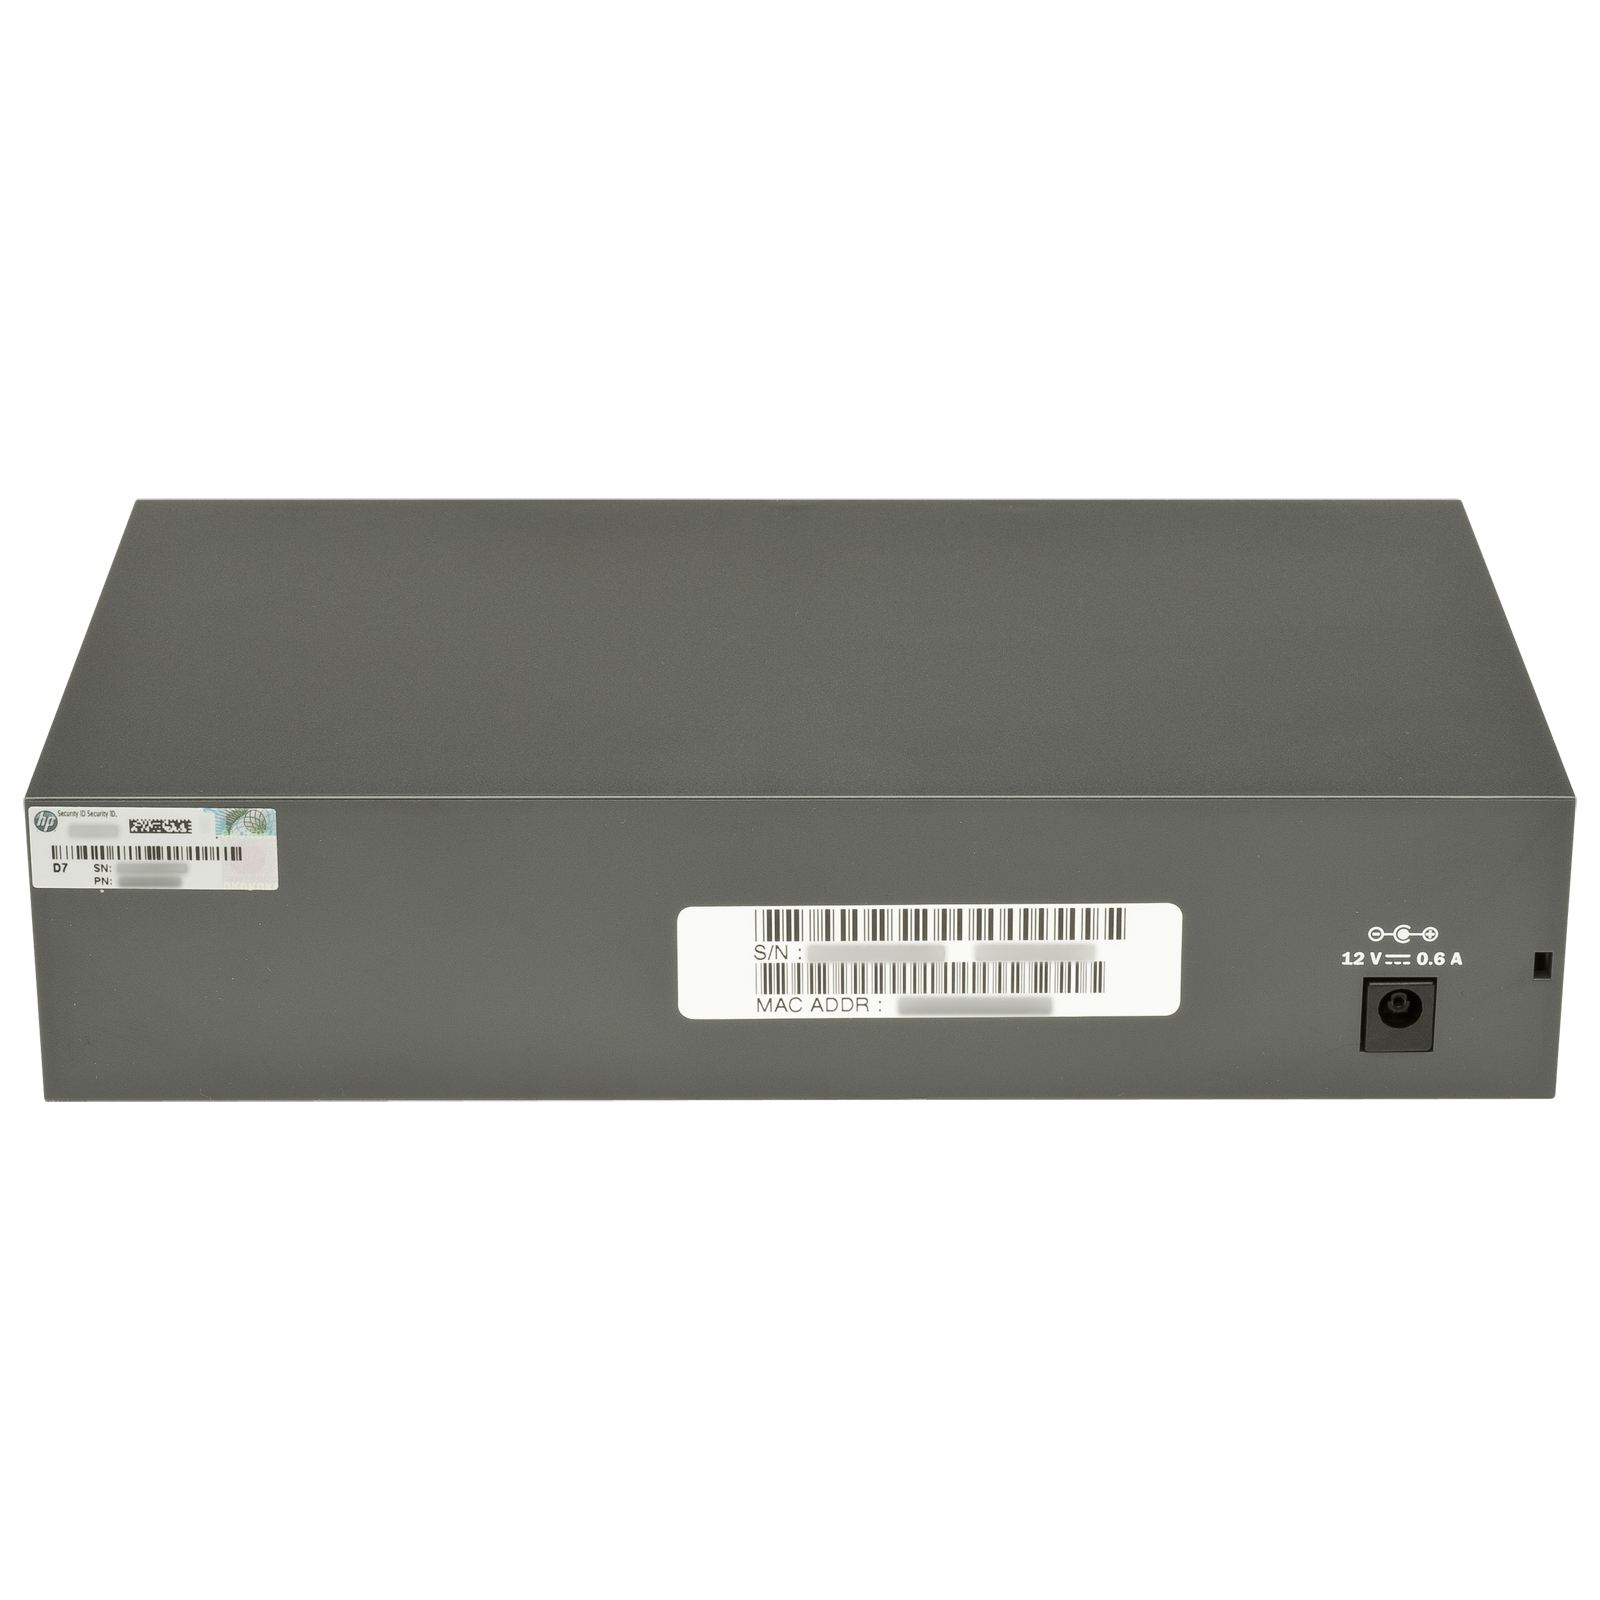 1810-8g v2 j9802a firmware - Hewlett Packard Enterprise ...